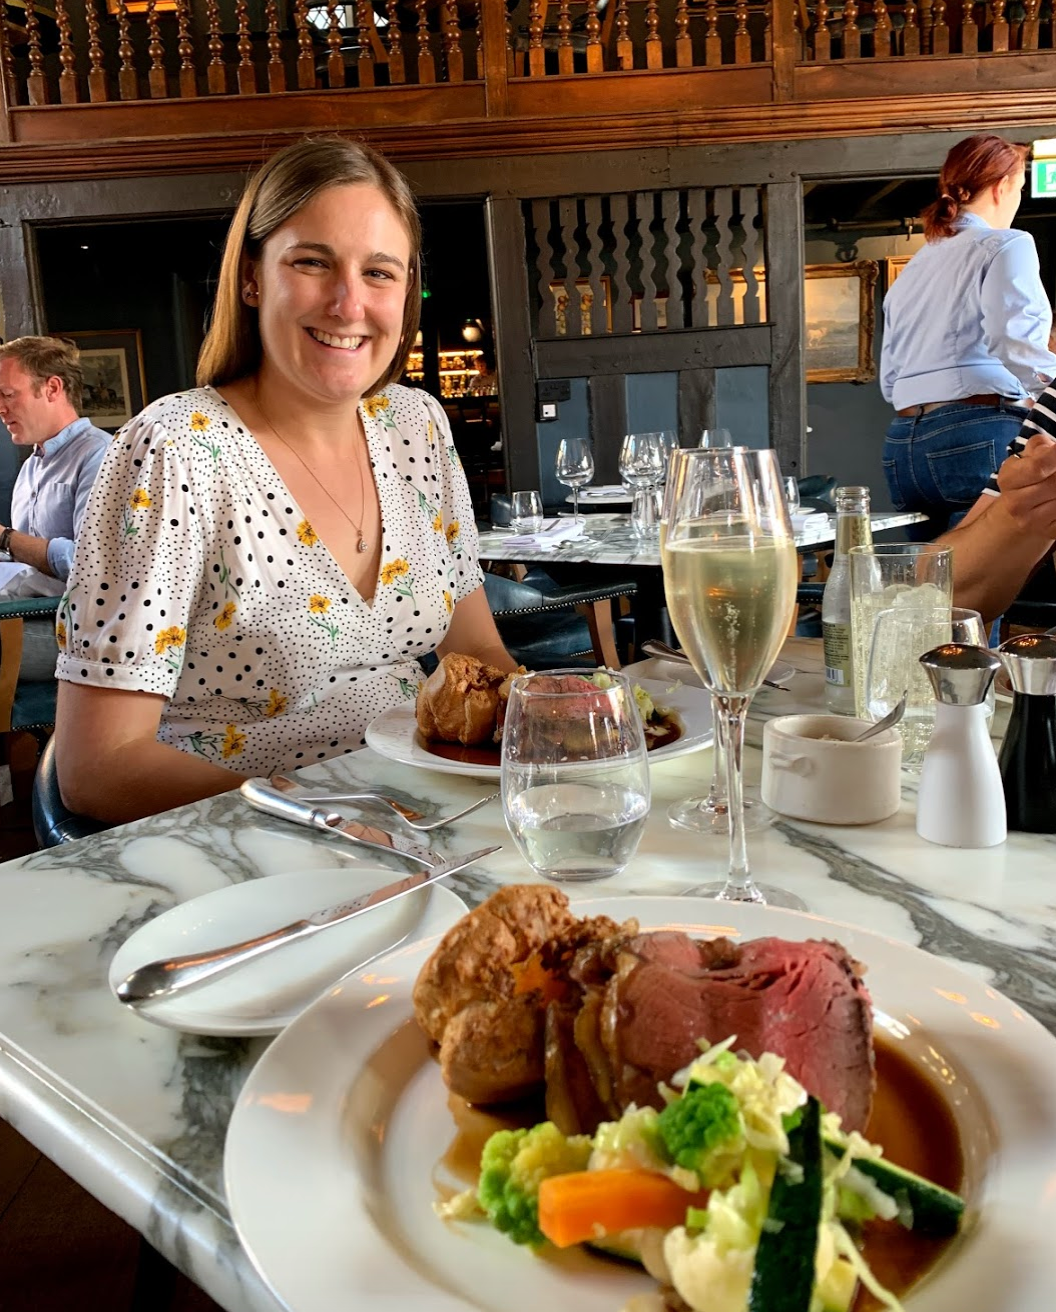 Roast dinner at Lygon Arms, Worcestershire